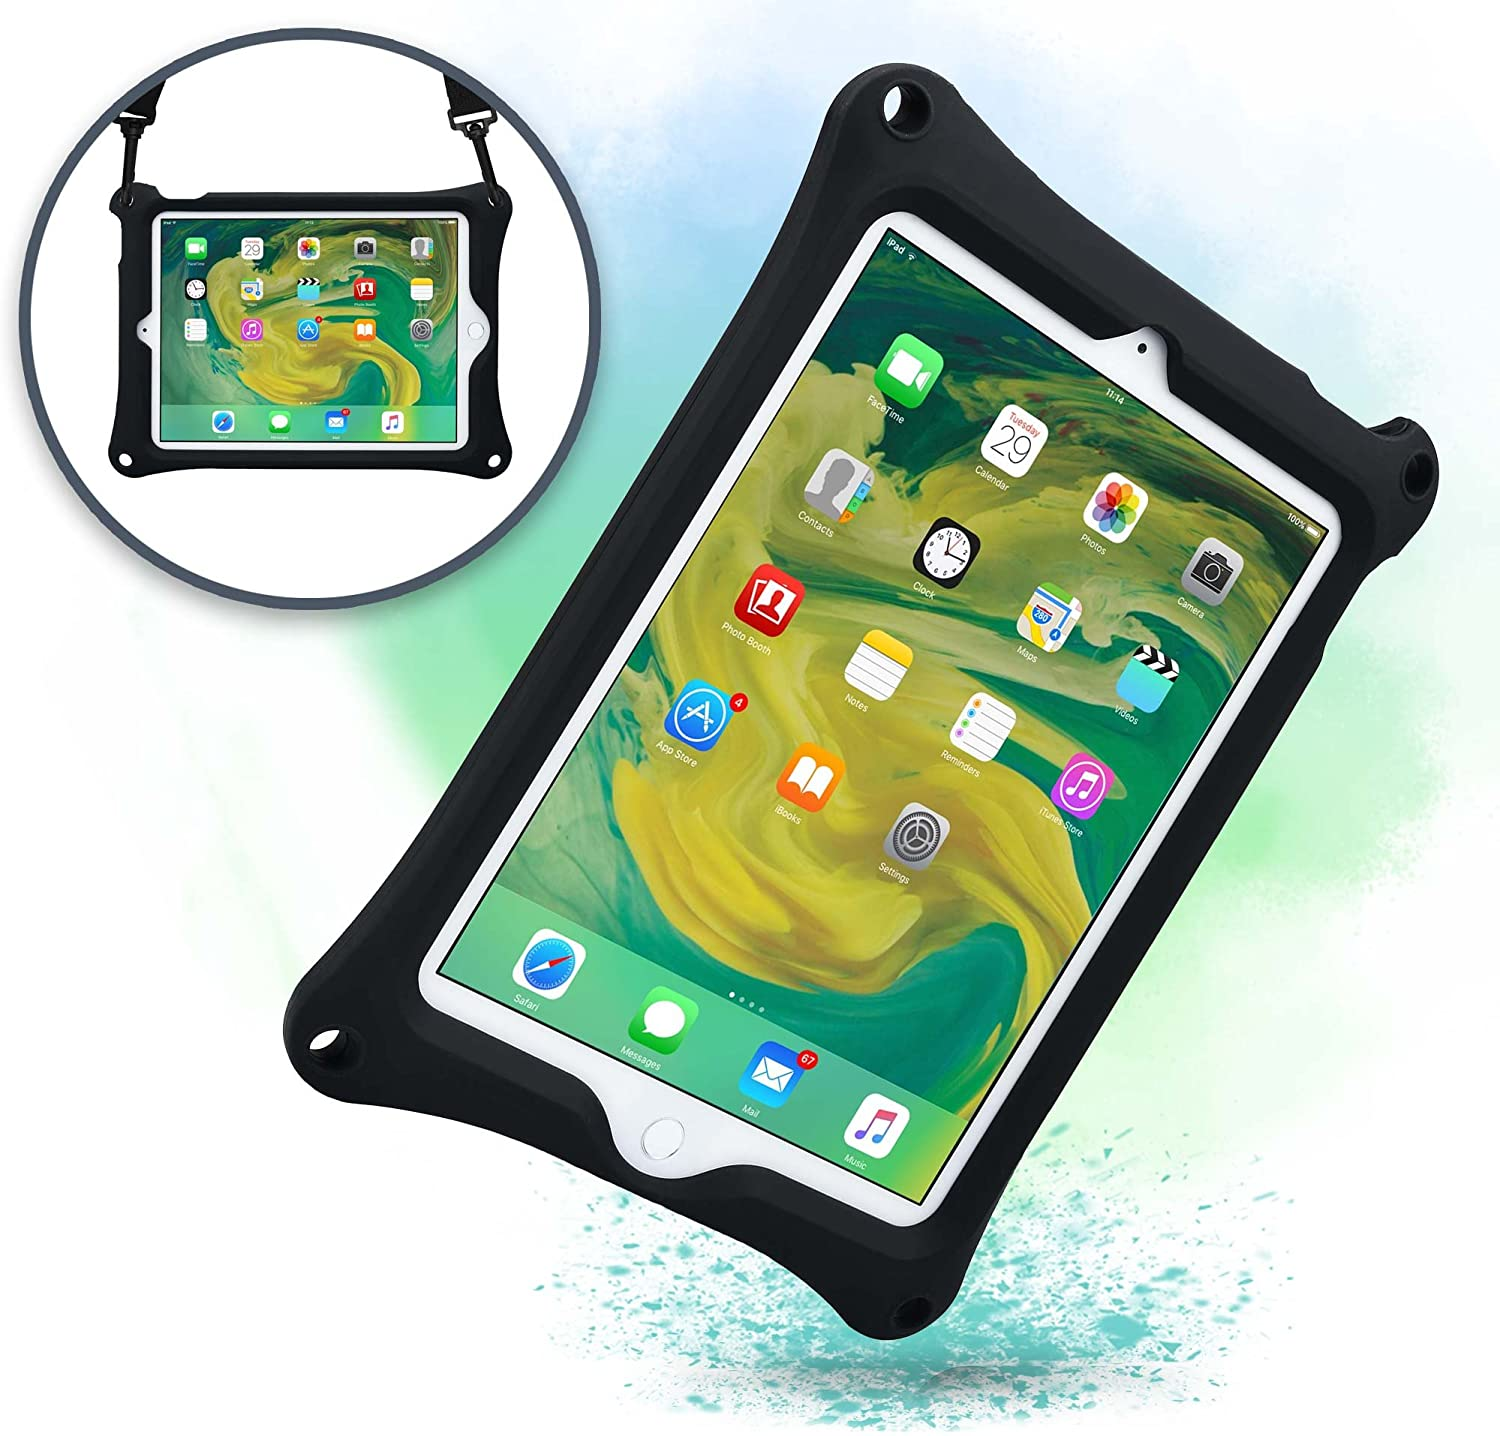 Cooper Bounce Strap [Rugged Silicon Carry Case] for Apple iPad Air 2, iPad Pro 9.7 | Shock Proof Heavy Duty Cover, Stand, Hand & Shoulder Strap (Black)